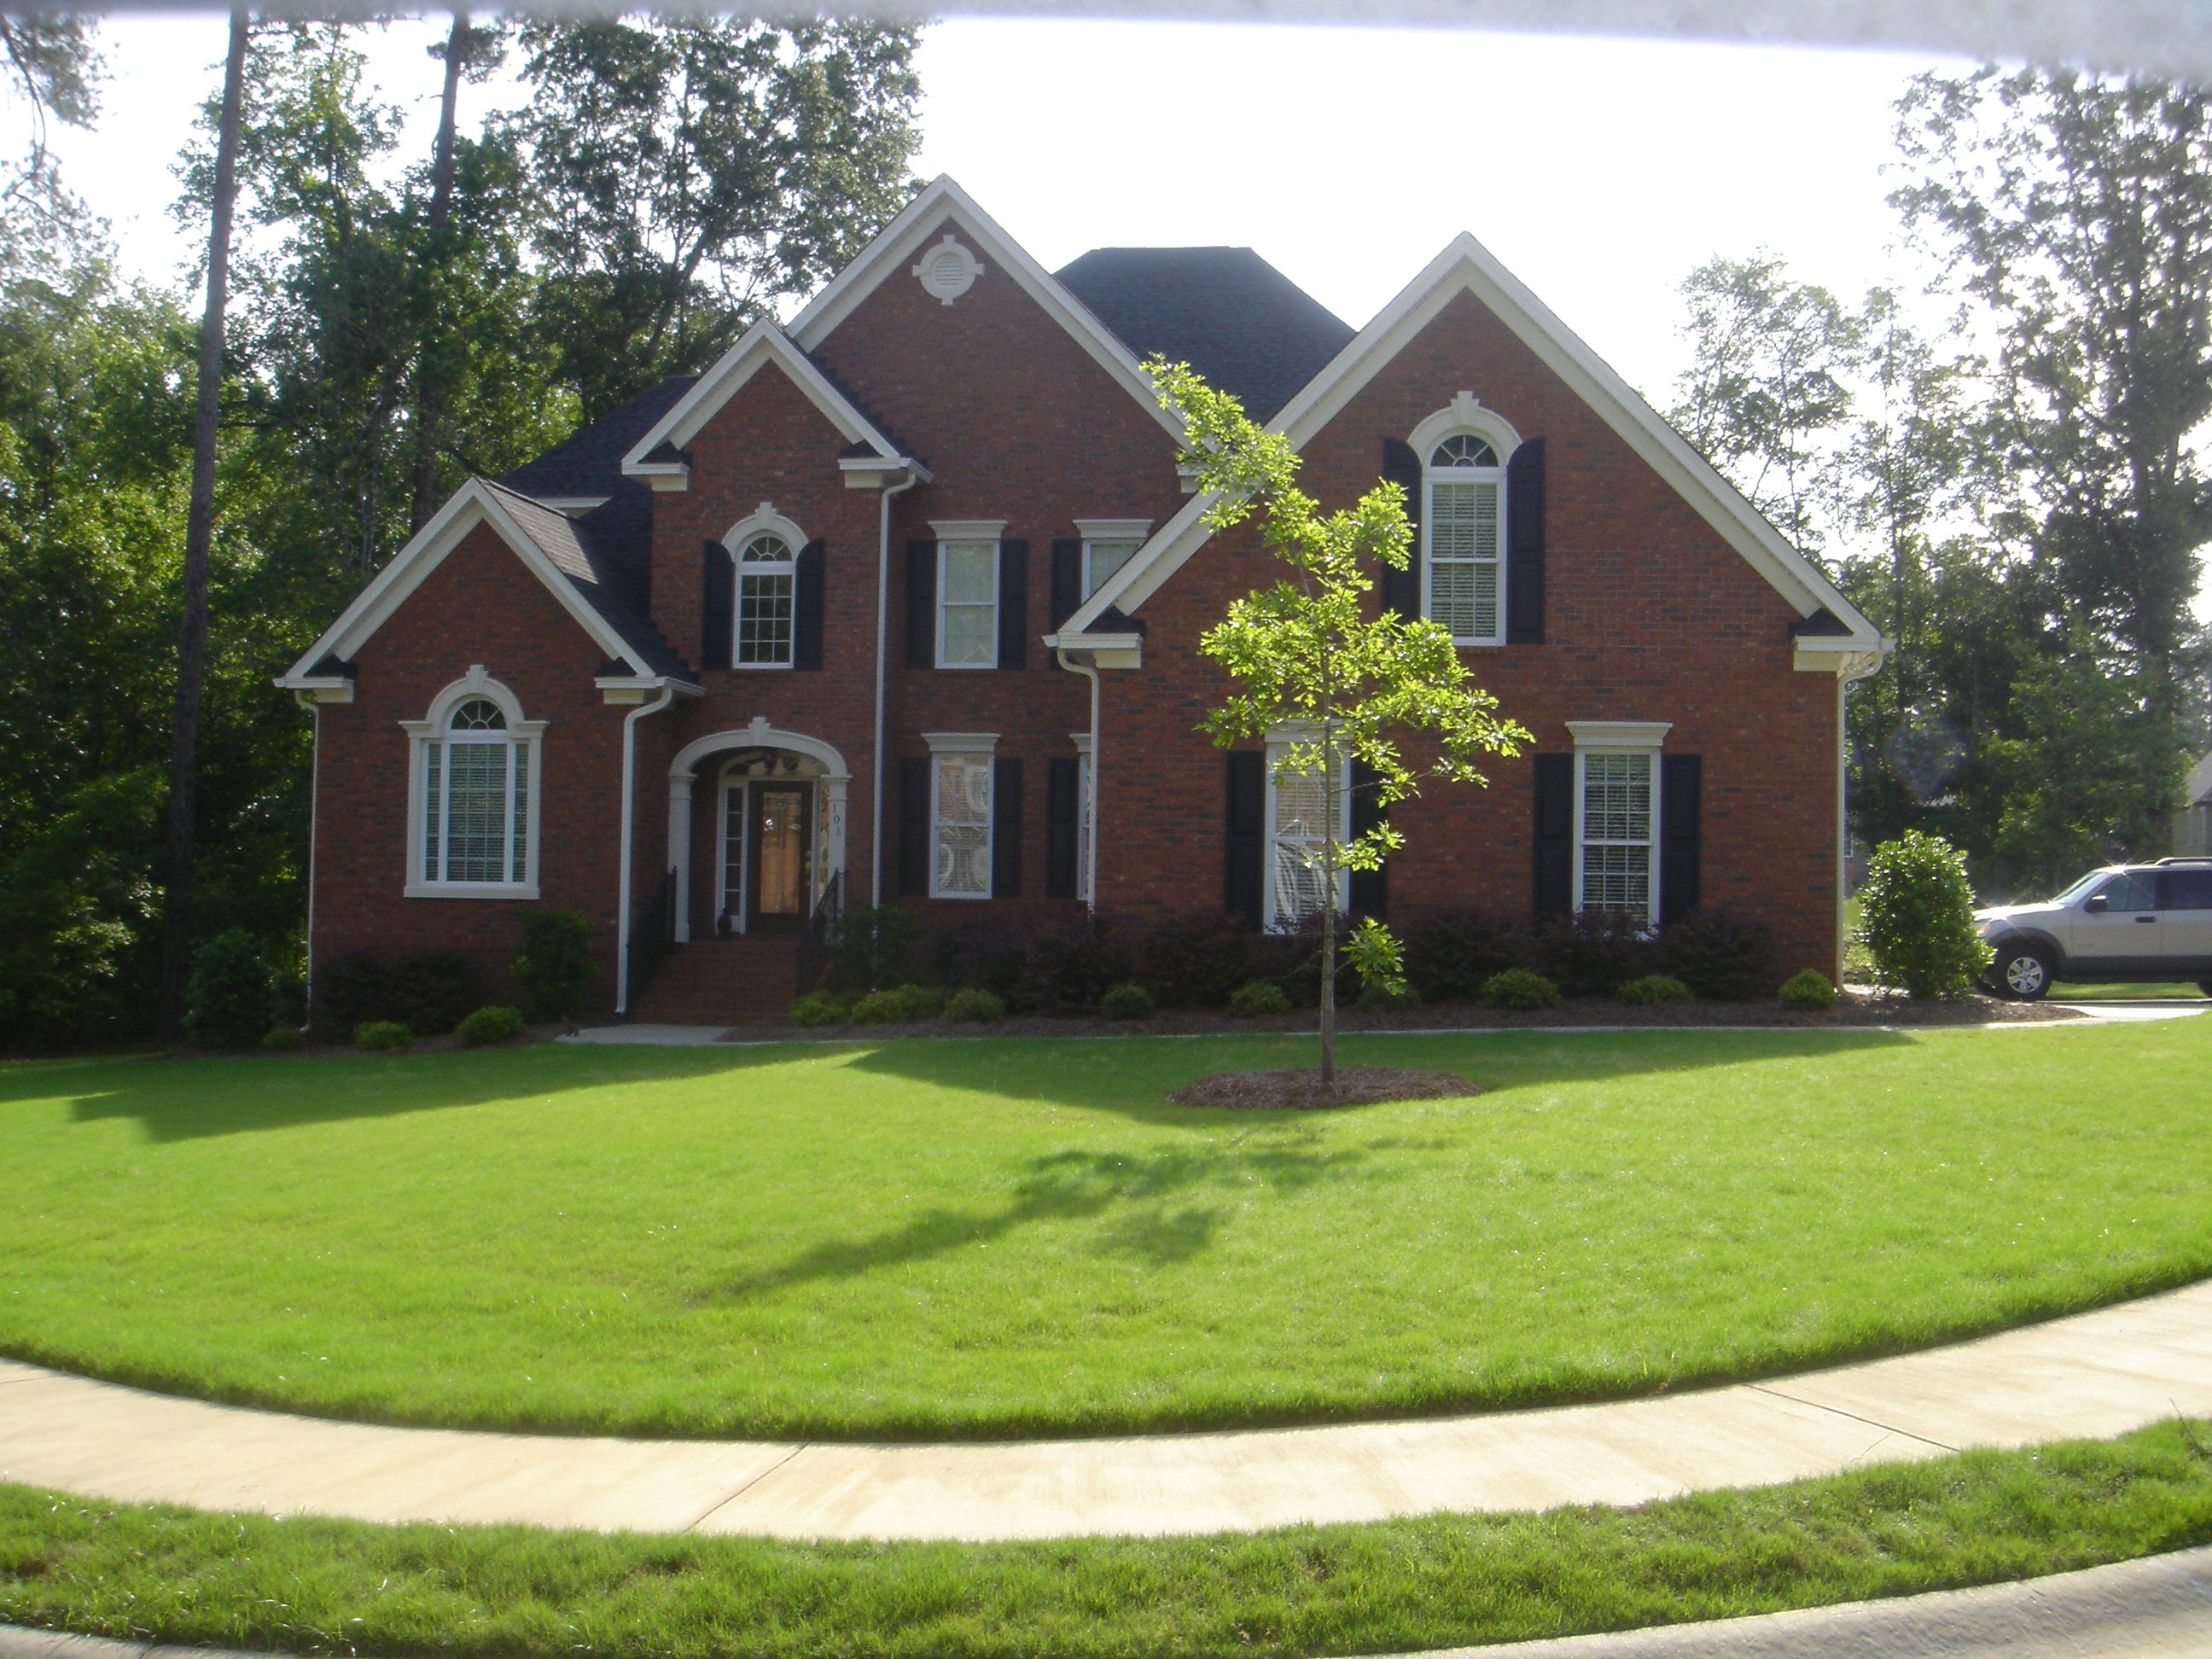 Lexington sc real estate homes for sale lake murray sc for Traditional brick homes